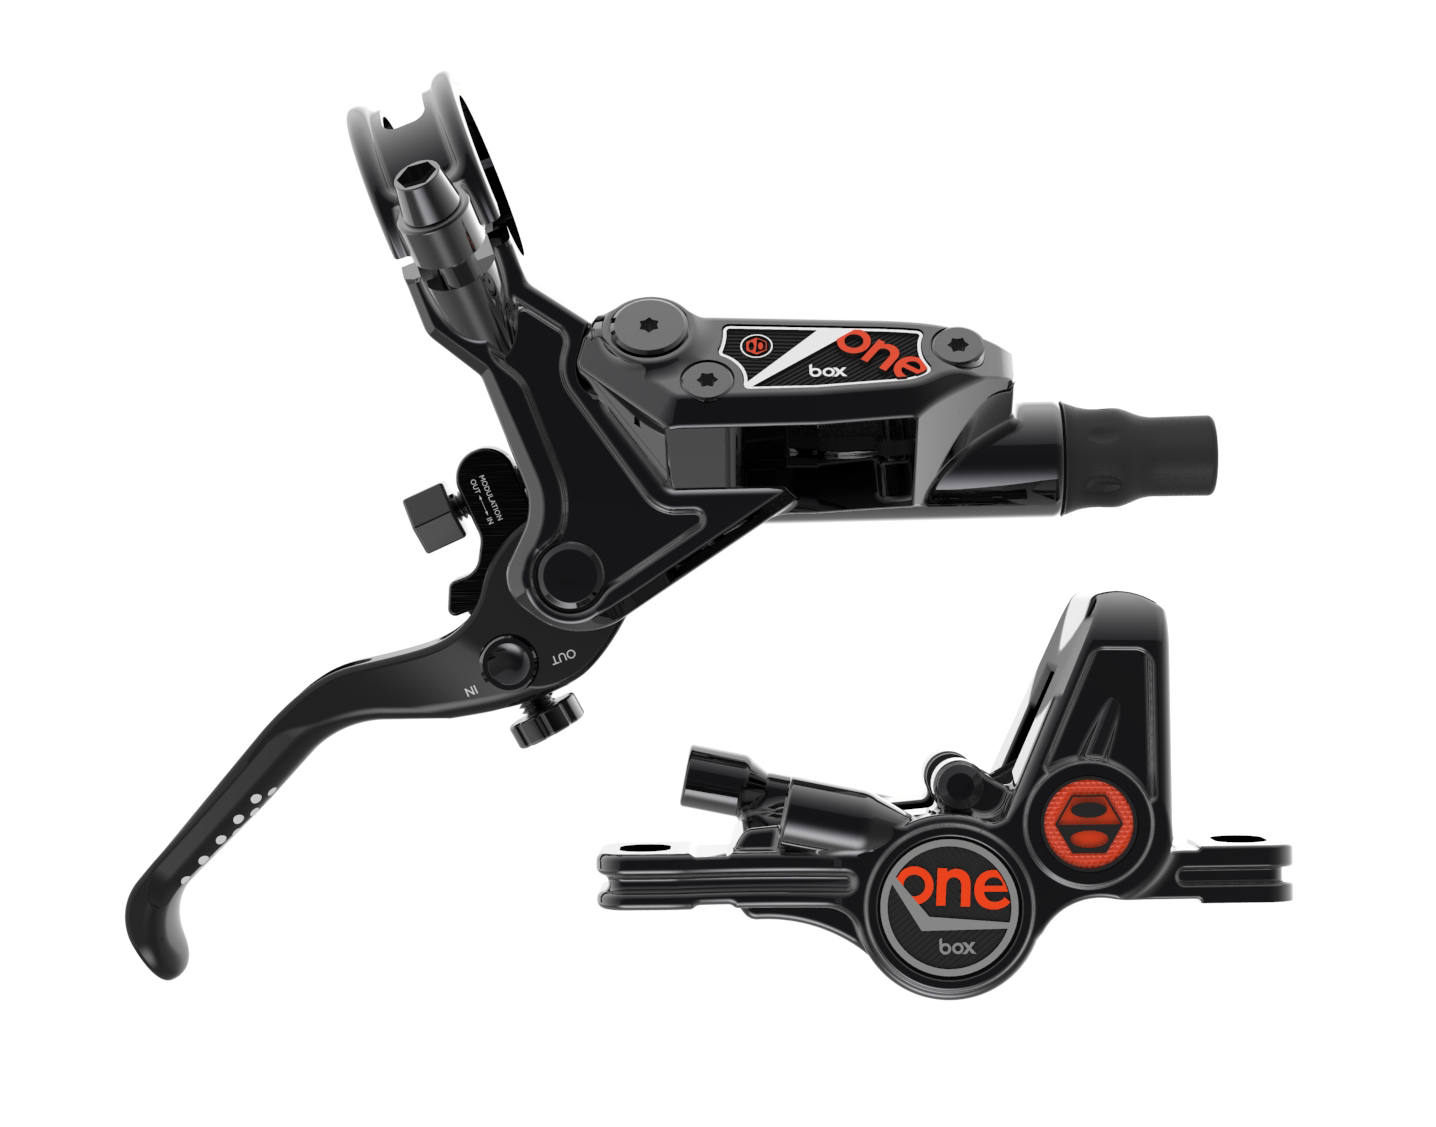 BOX-One-Disc-Brake-Lever-Right-3